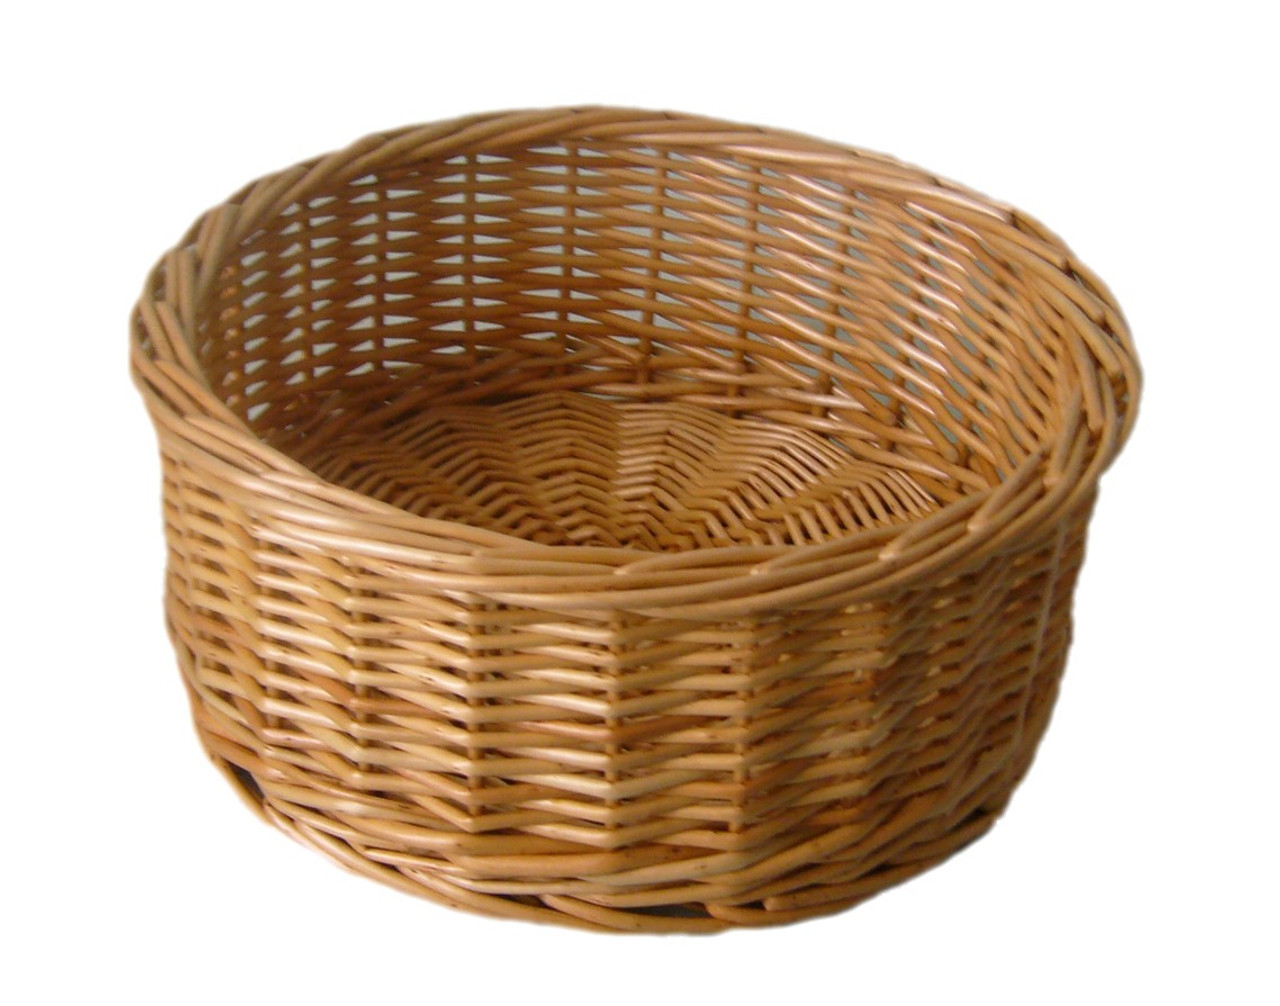 SMALL ROUND WILLOW BASKET 250 x 100mm